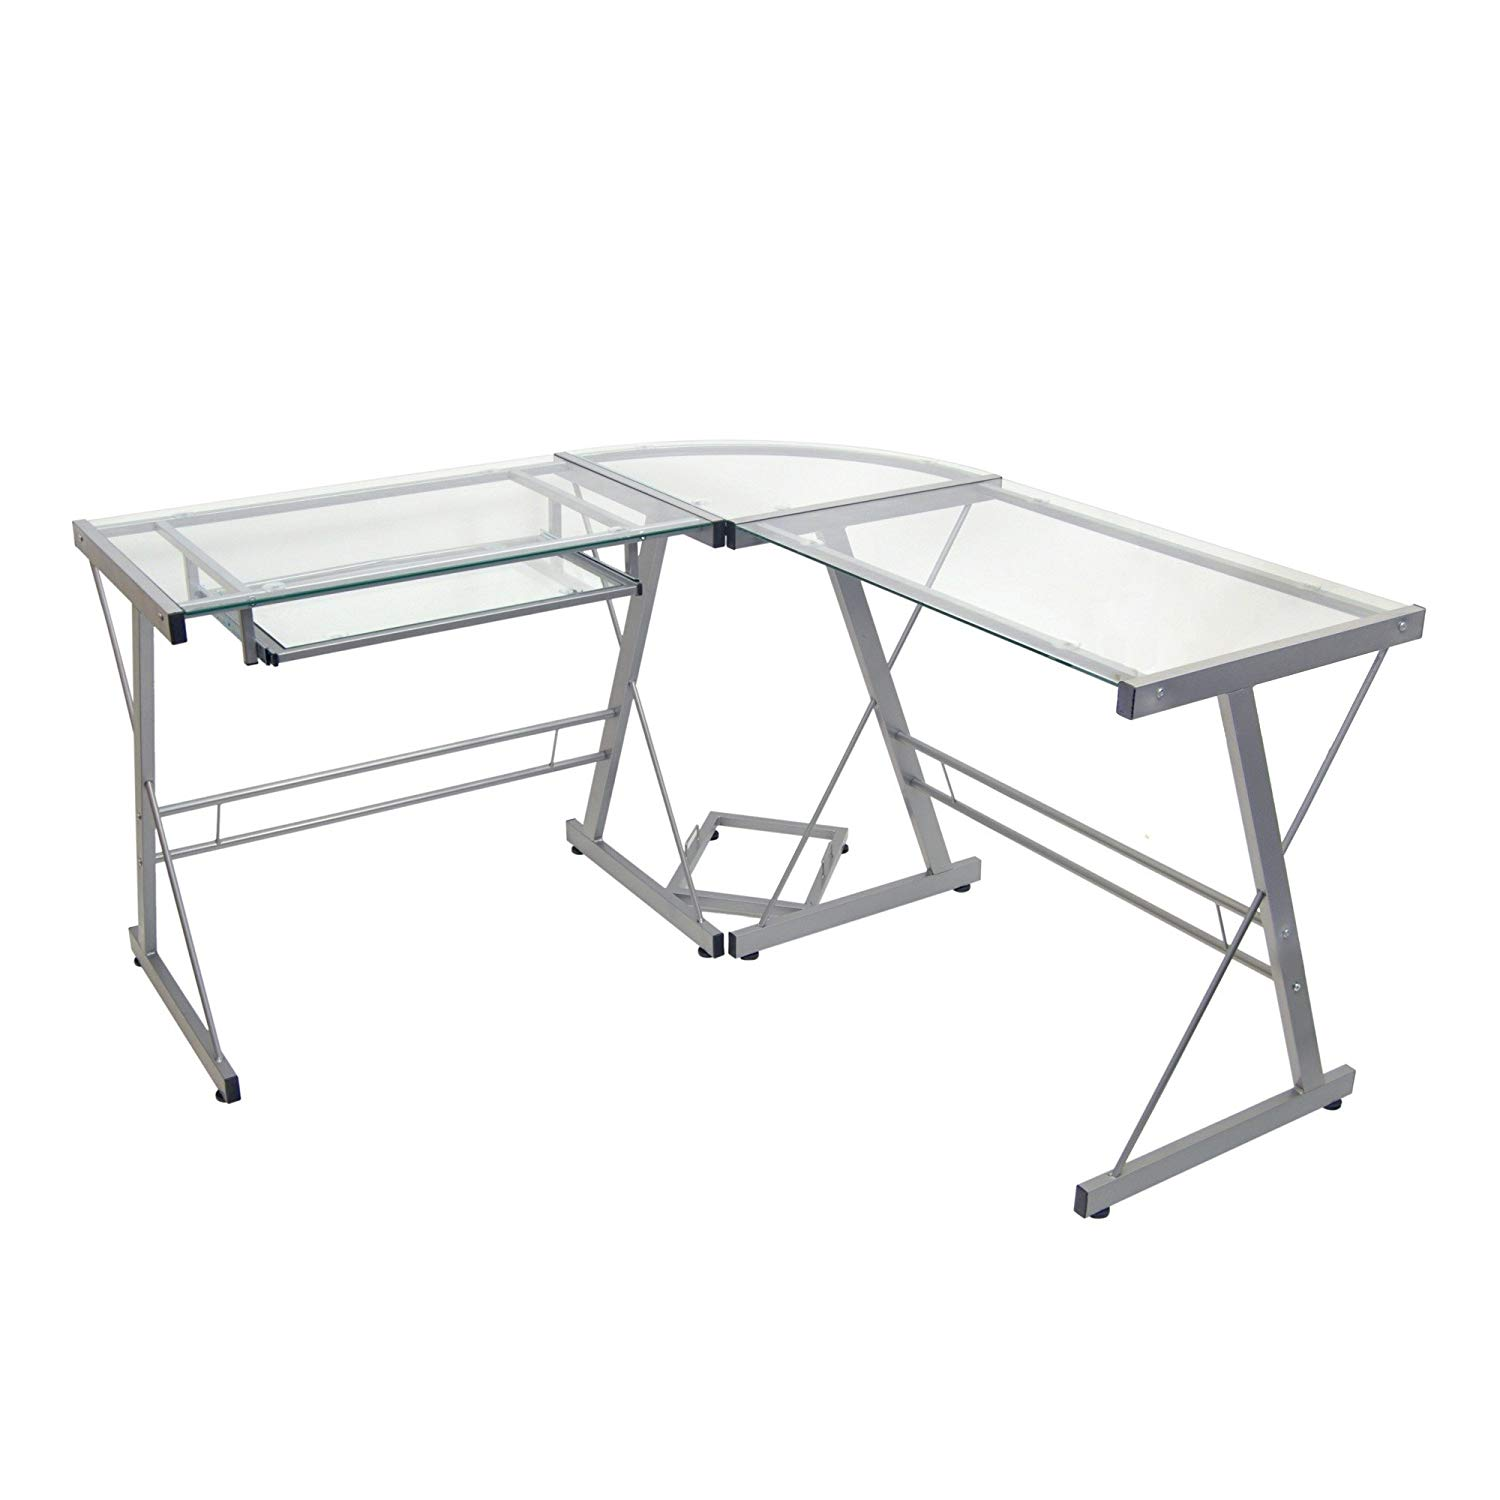 MyEasyShopping Hardy L-Shape Glass Corner Computer Desk L Corner Computer Desk Glass Office Shaped Workstation Table Laptop Shape